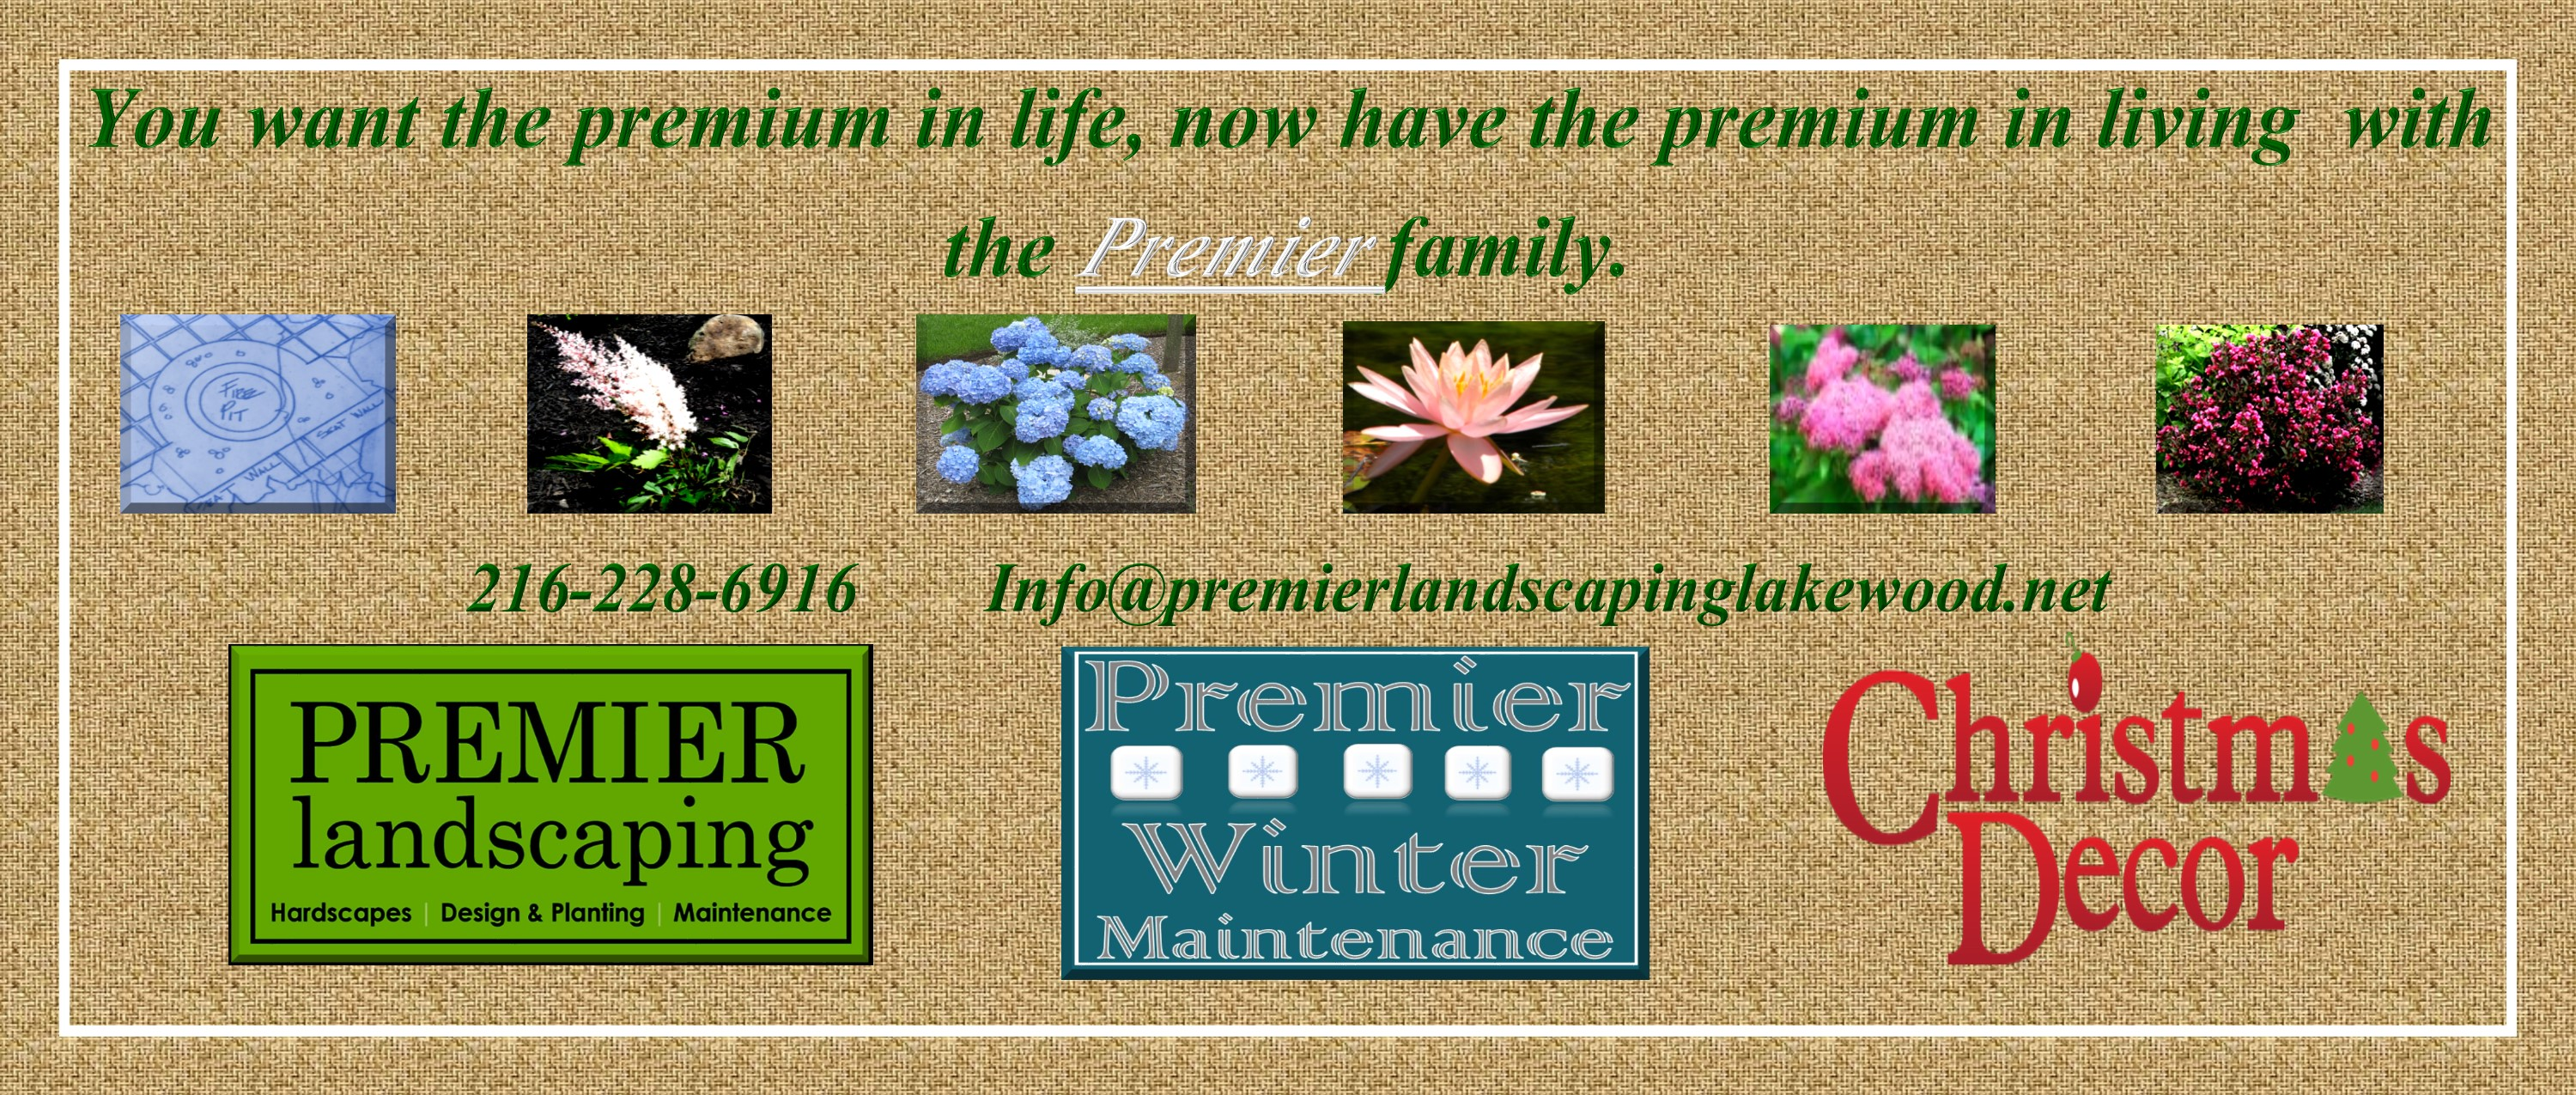 Landscaping, Winter Maintenance & Christmas Decor